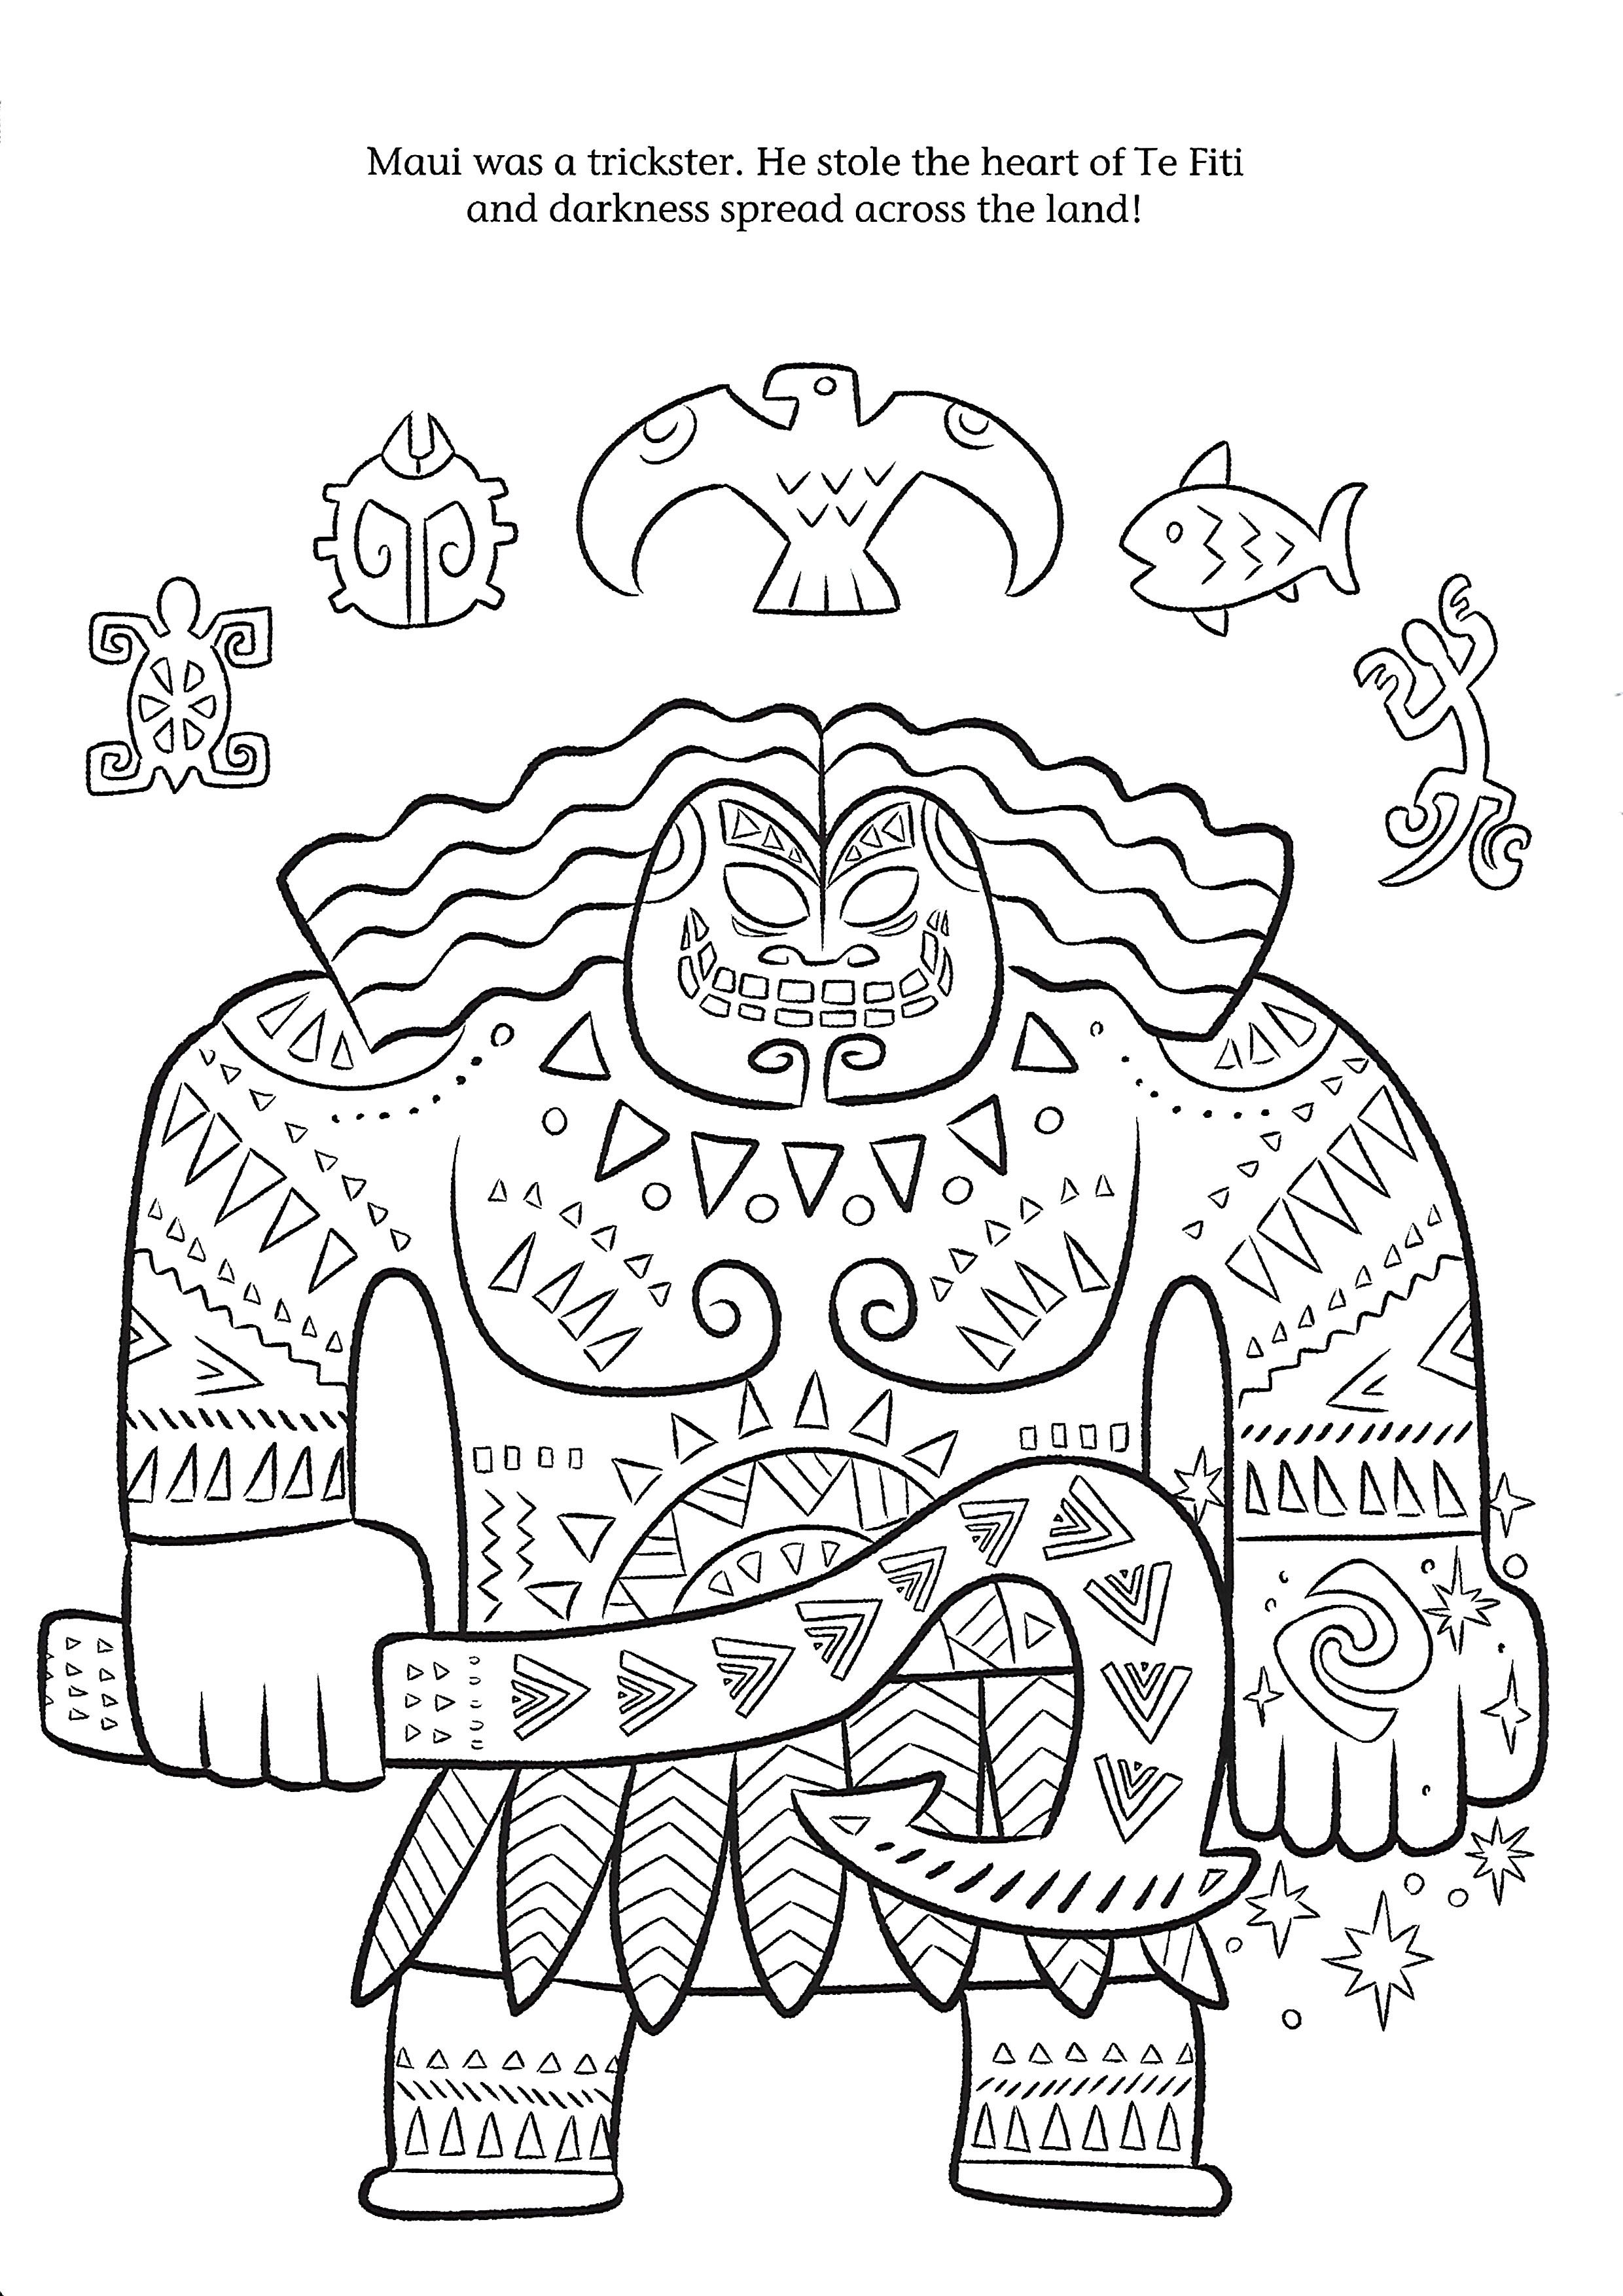 Moana Coloring Page Moana Coloring Moana Coloring Pages Colouring Pages [ 3508 x 2480 Pixel ]